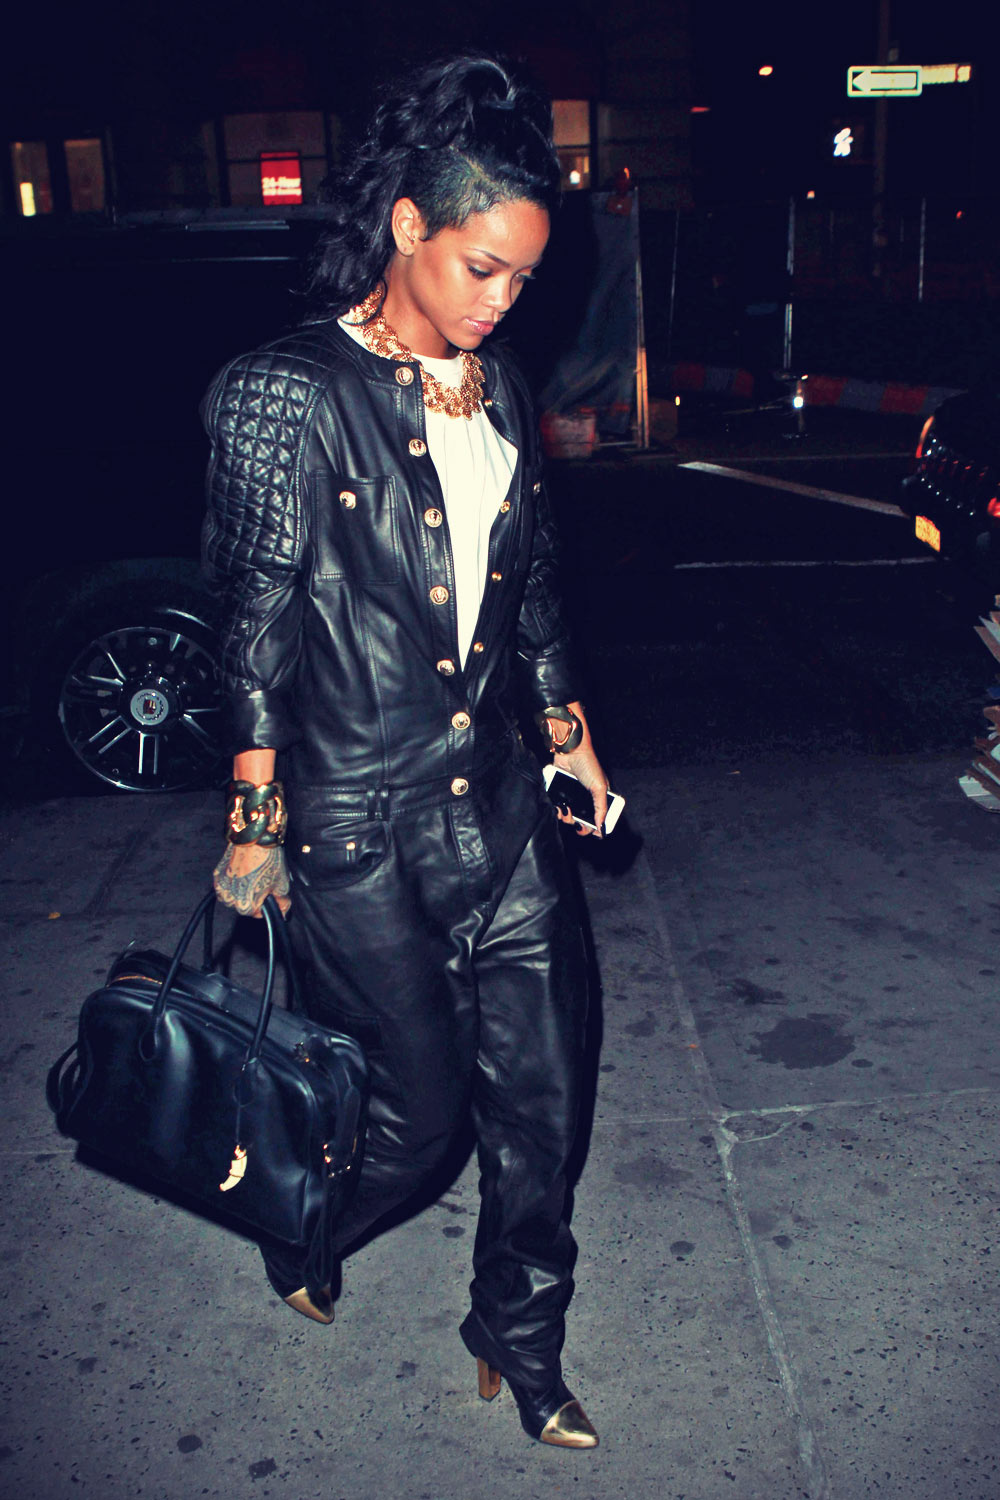 Rihanna dinners at Nobu restaraunt in New York